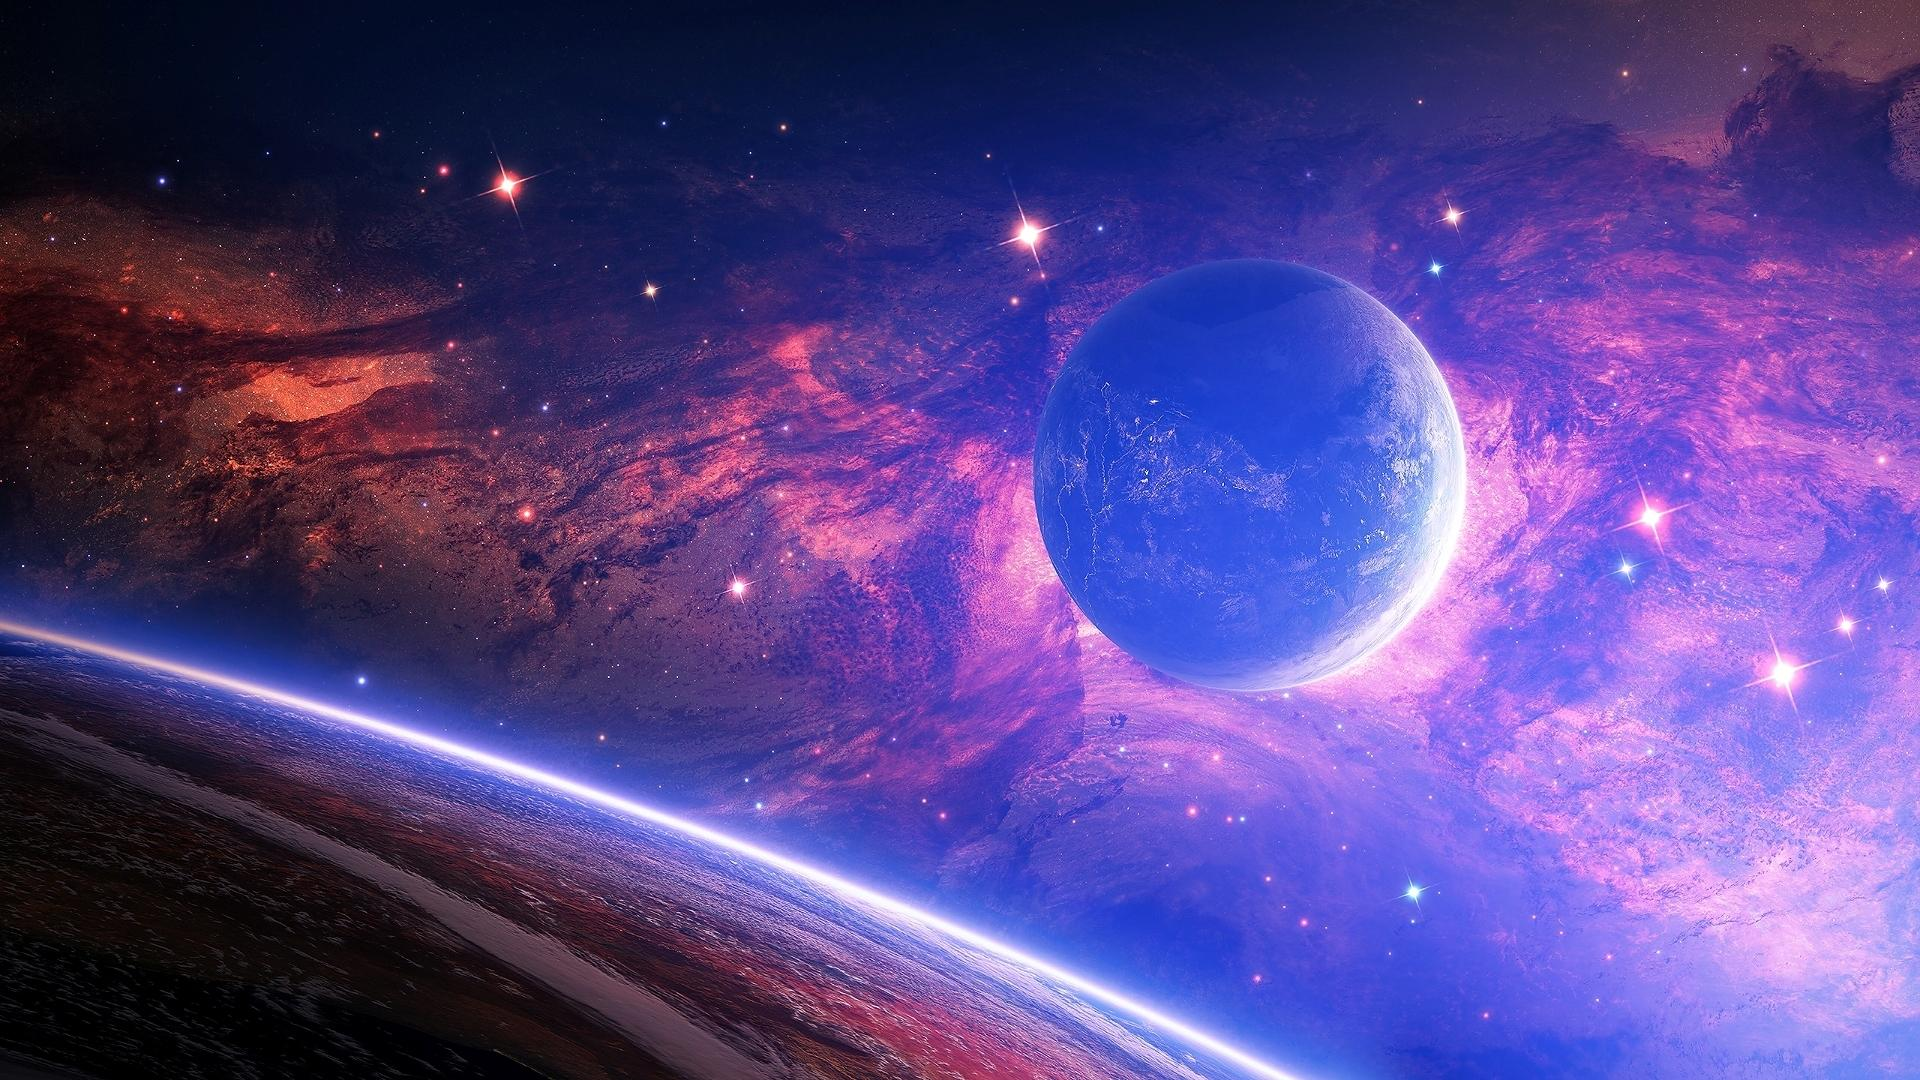 Beautiful Space Wallpaper   HD Wallpapers Lovely 1920x1080